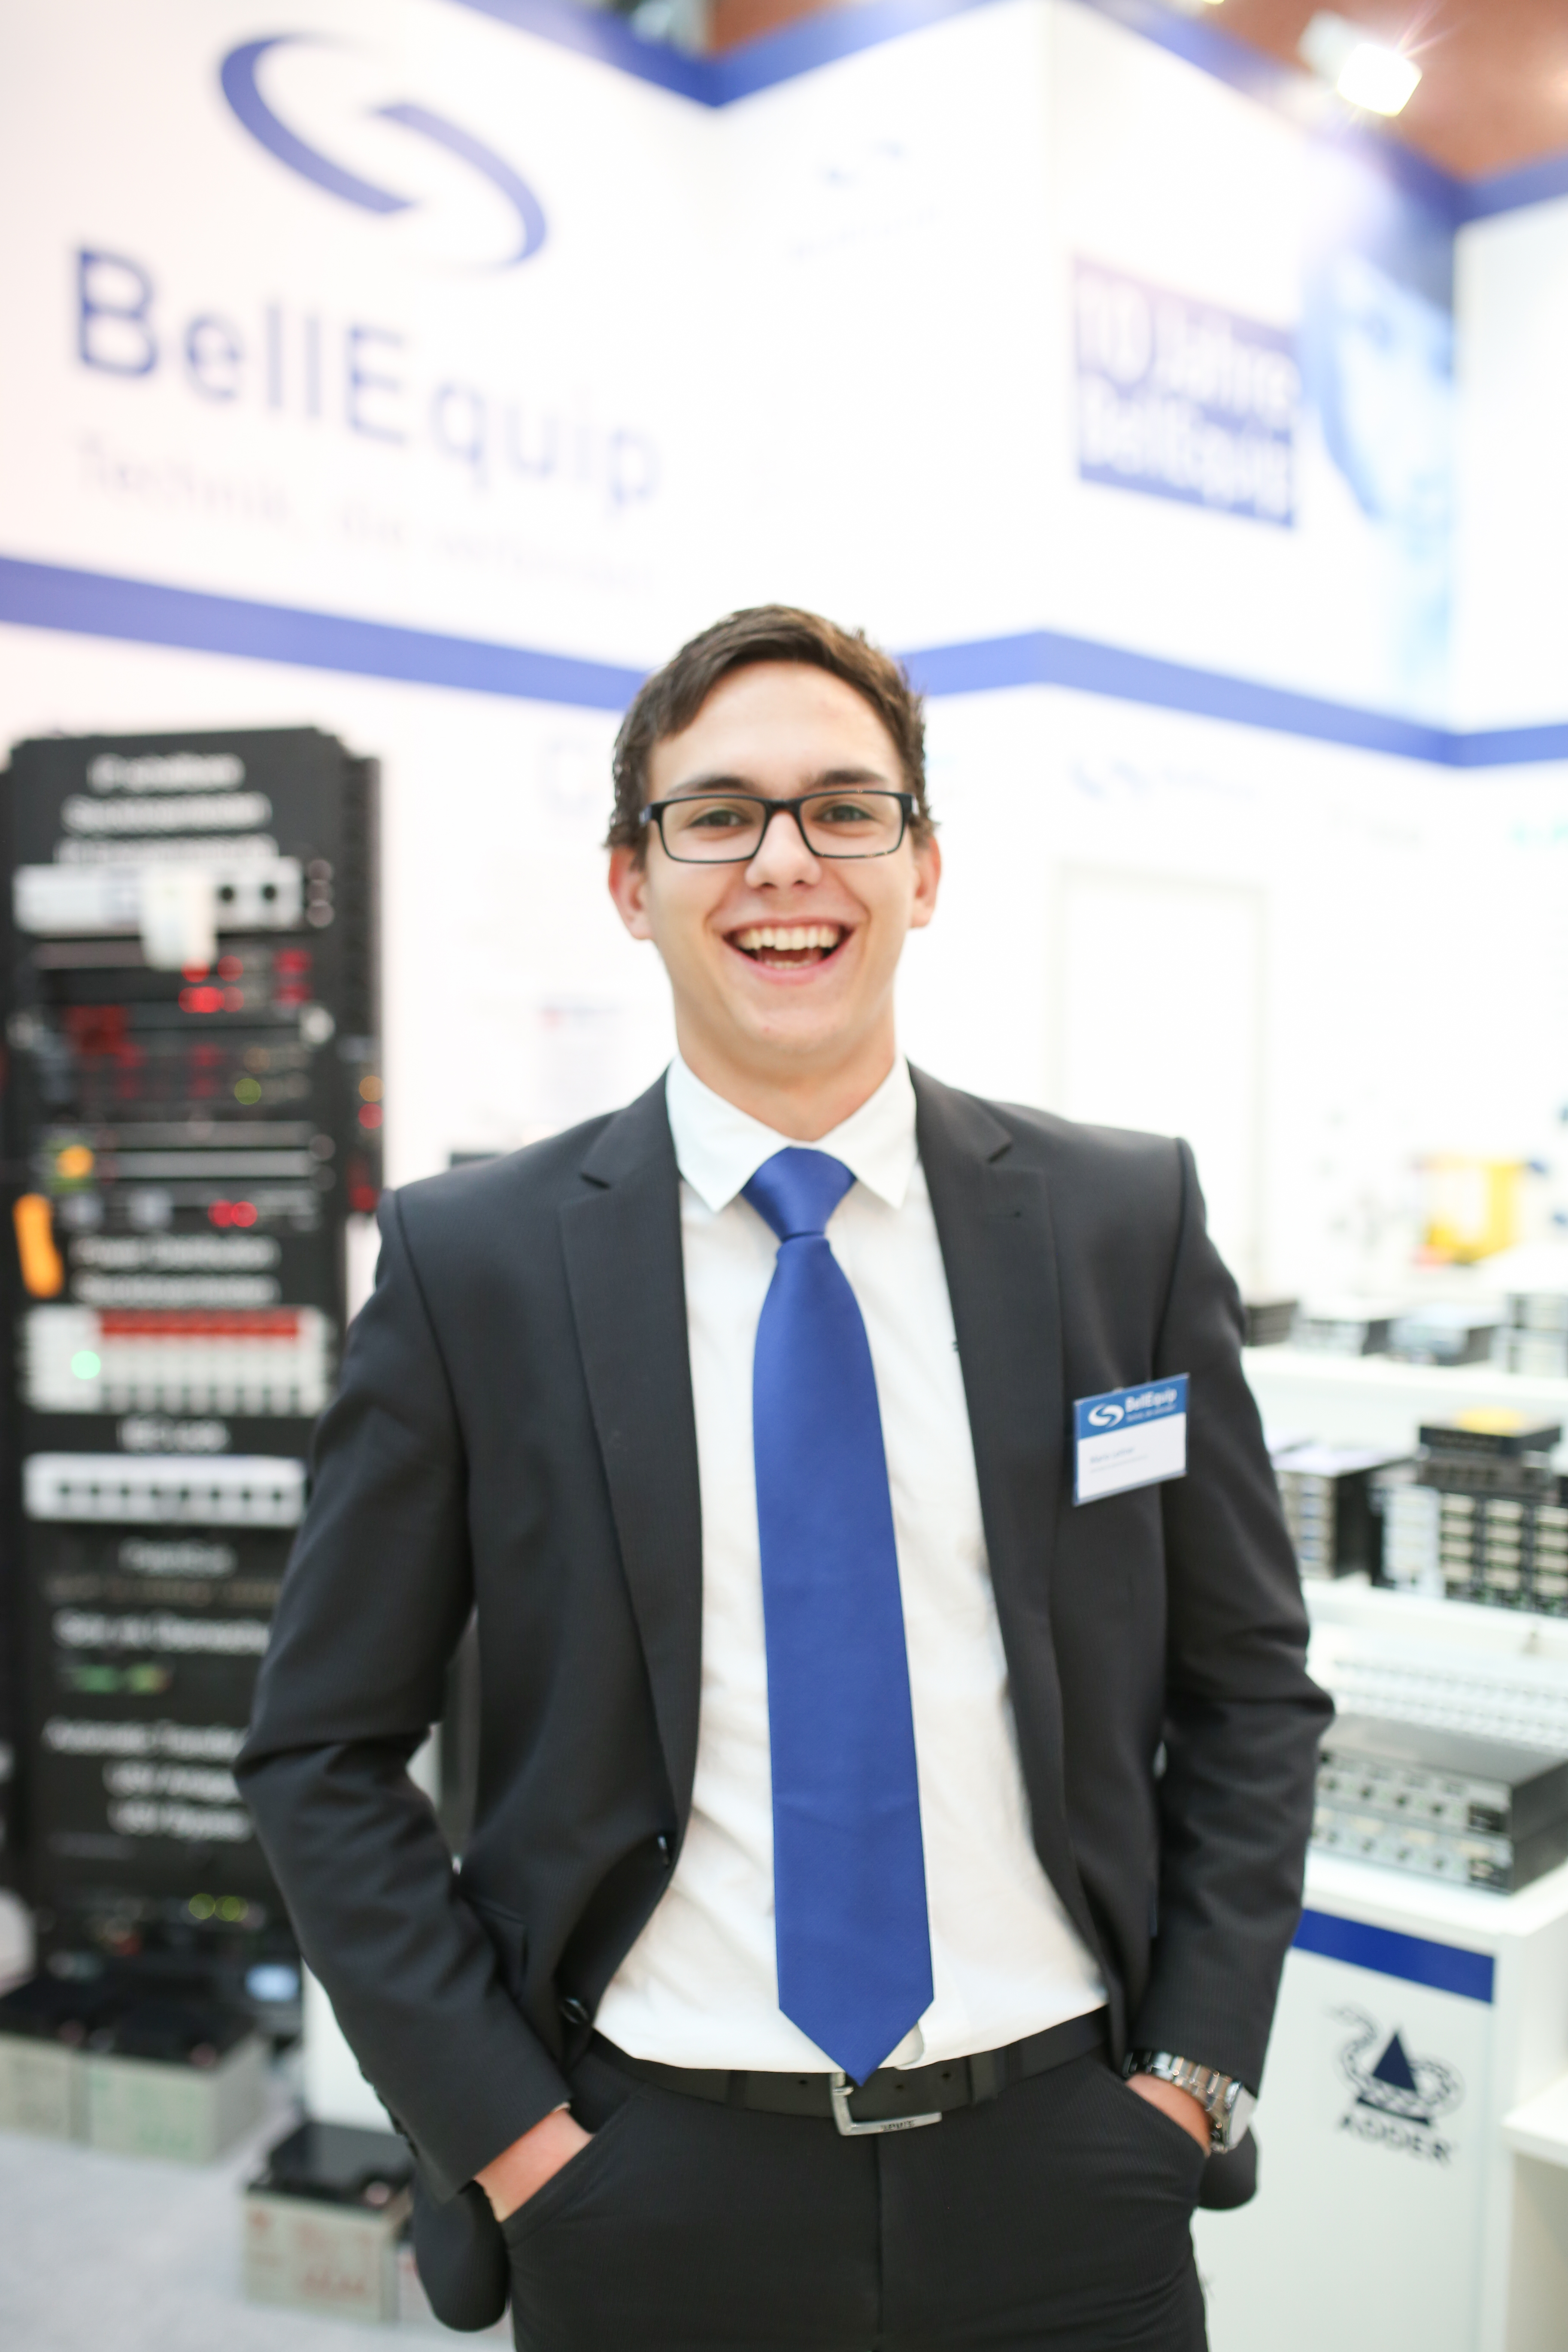 bellquip-gmbh-040-mario-leitner-smart-automation-2015